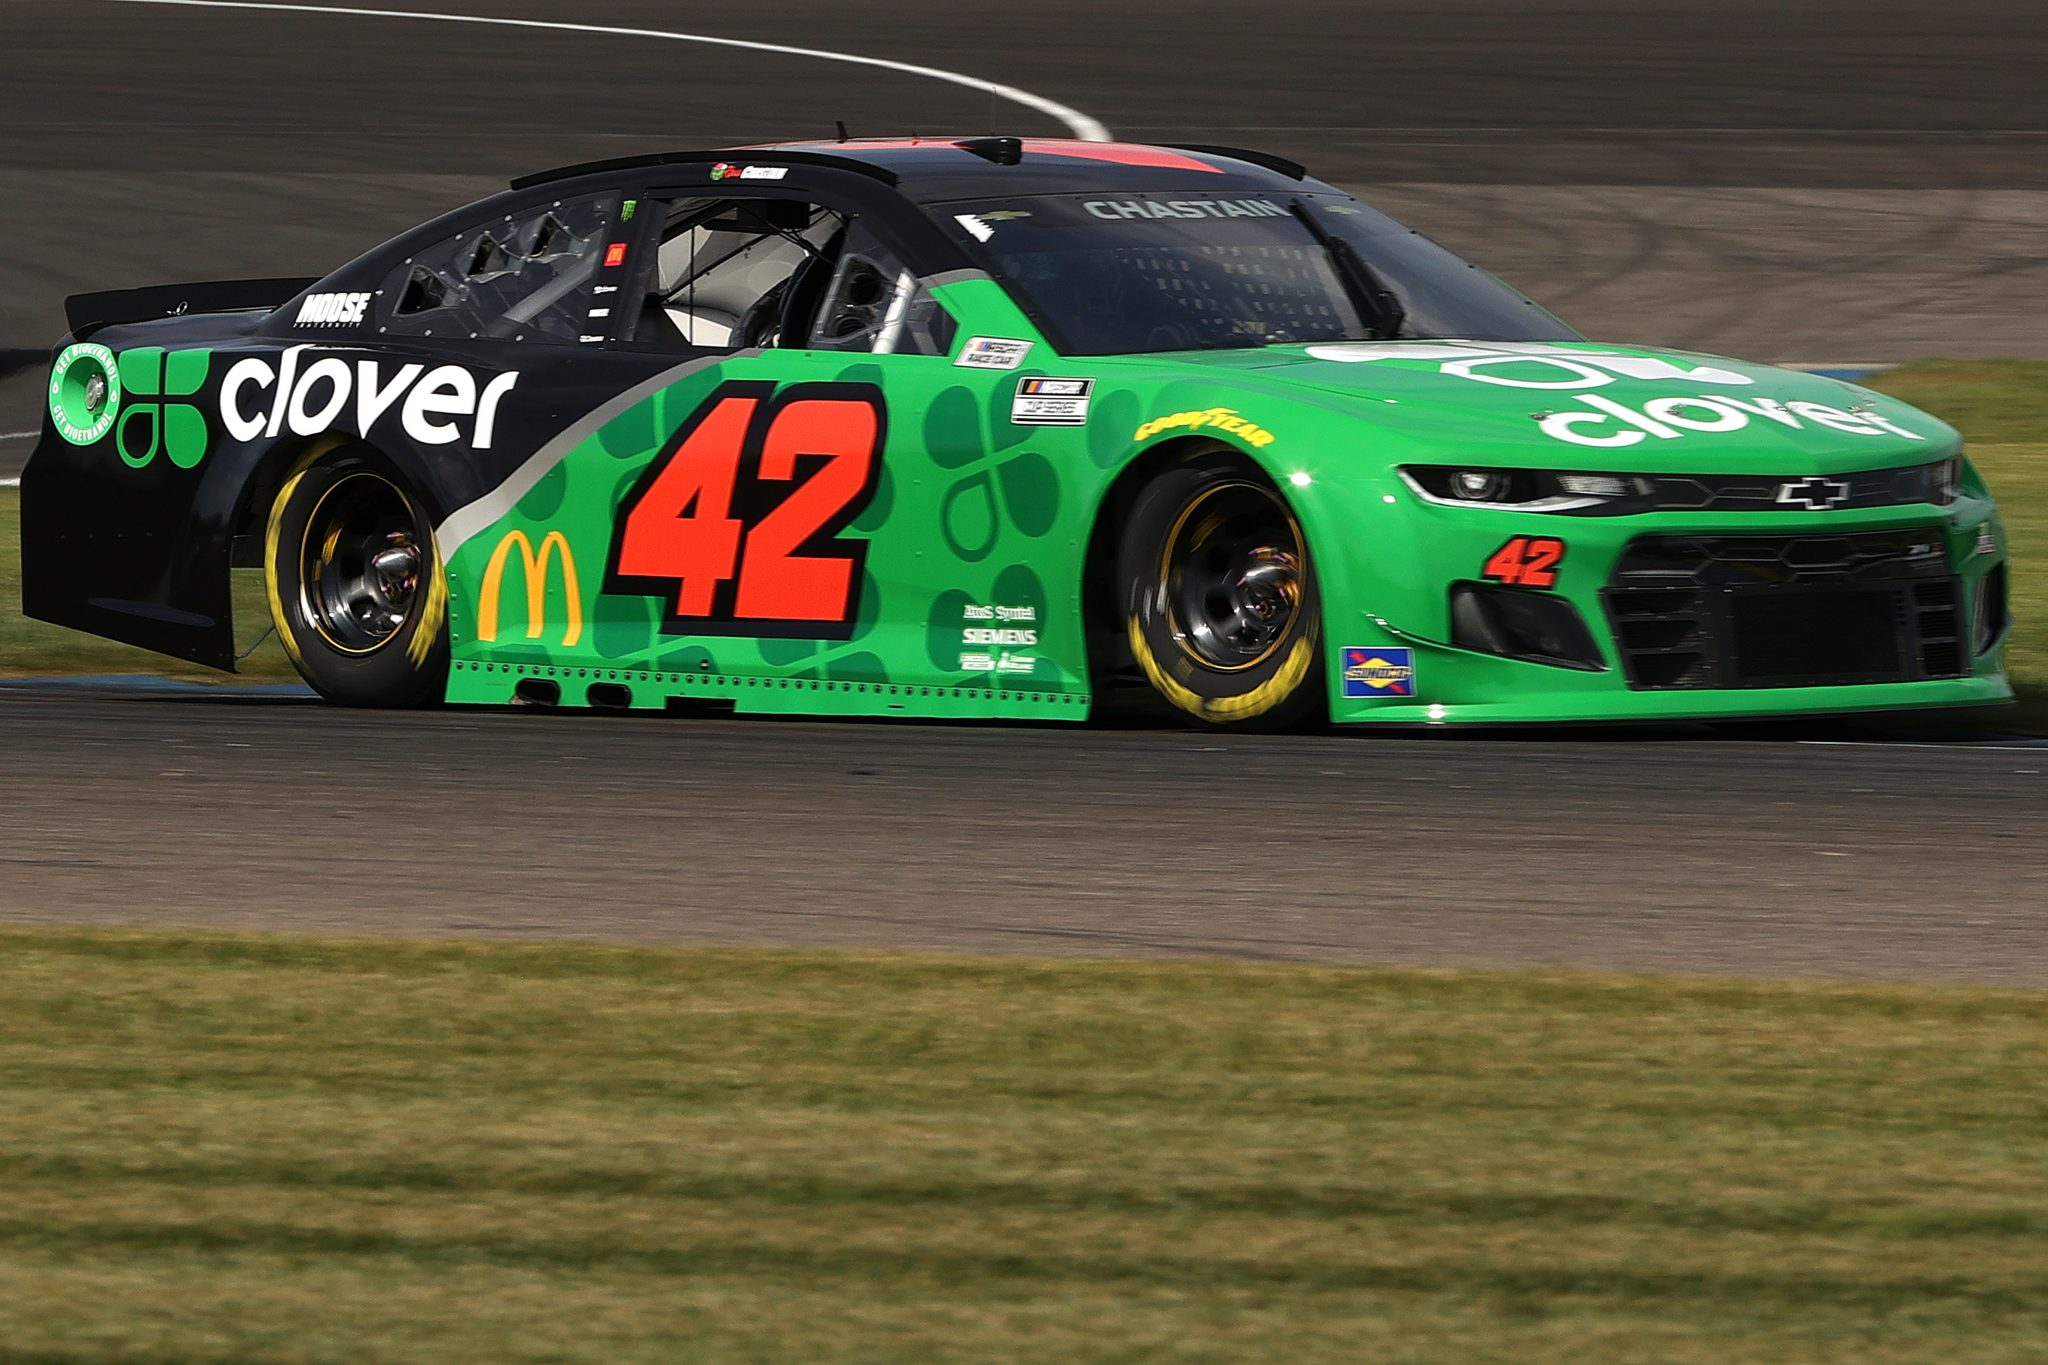 INDIANAPOLIS, INDIANA - AUGUST 14: Ross Chastain, driver of the #42 Clover Chevrolet, drives during practice for the NASCAR Cup Series Verizon 200 at the Brickyard at Indianapolis Motor Speedway on August 14, 2021 in Indianapolis, Indiana. (Photo by Stacy Revere/Getty Images) | Getty Images